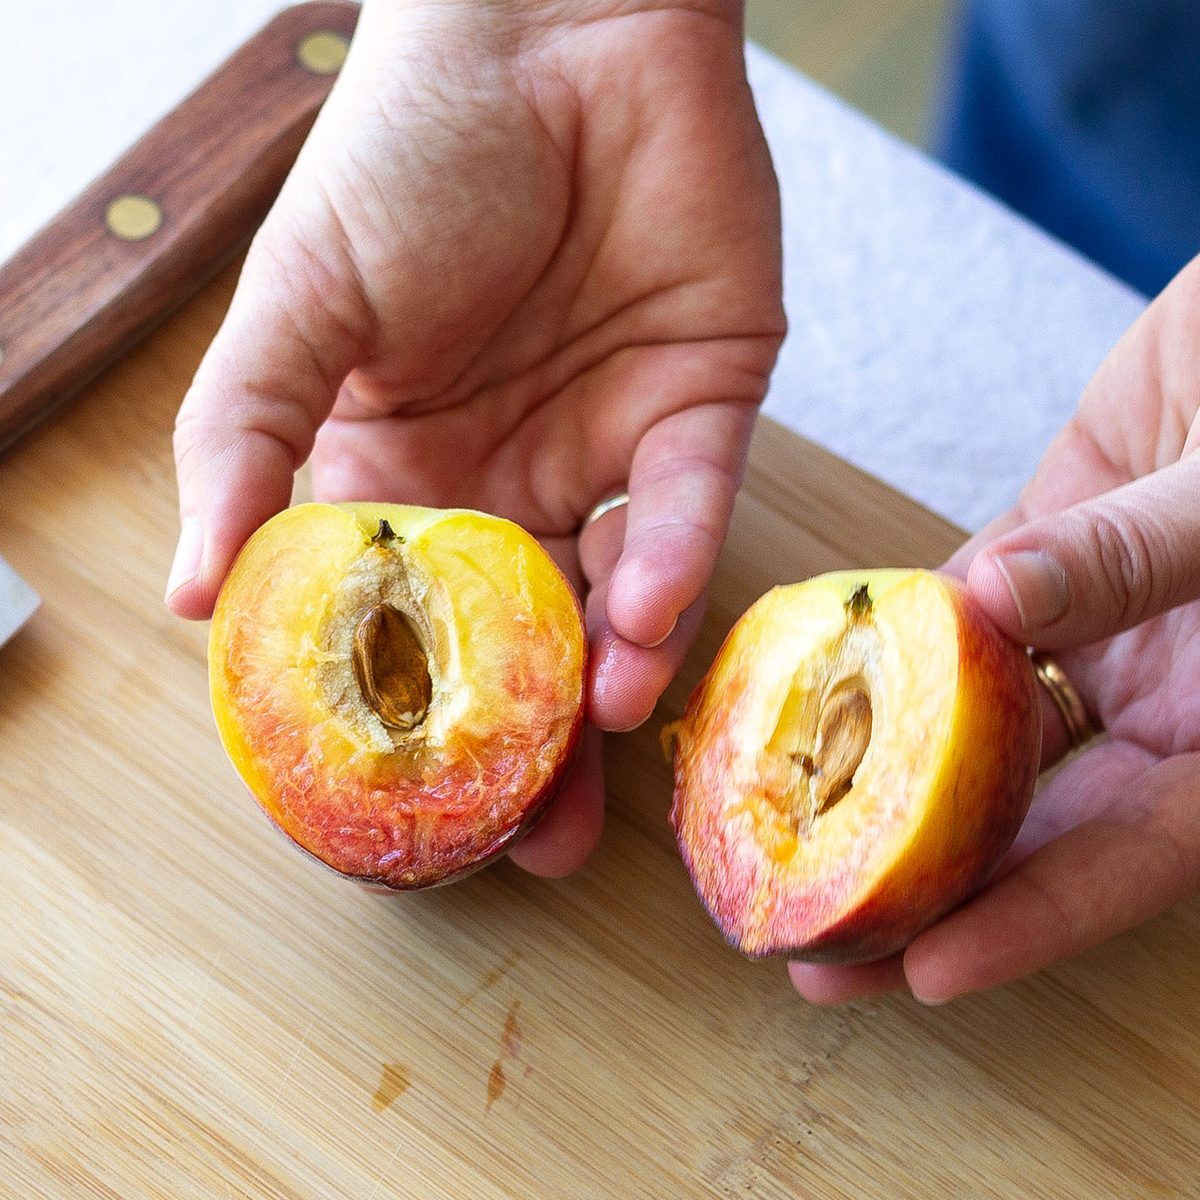 Two hands holding two halves of a fresh peach.